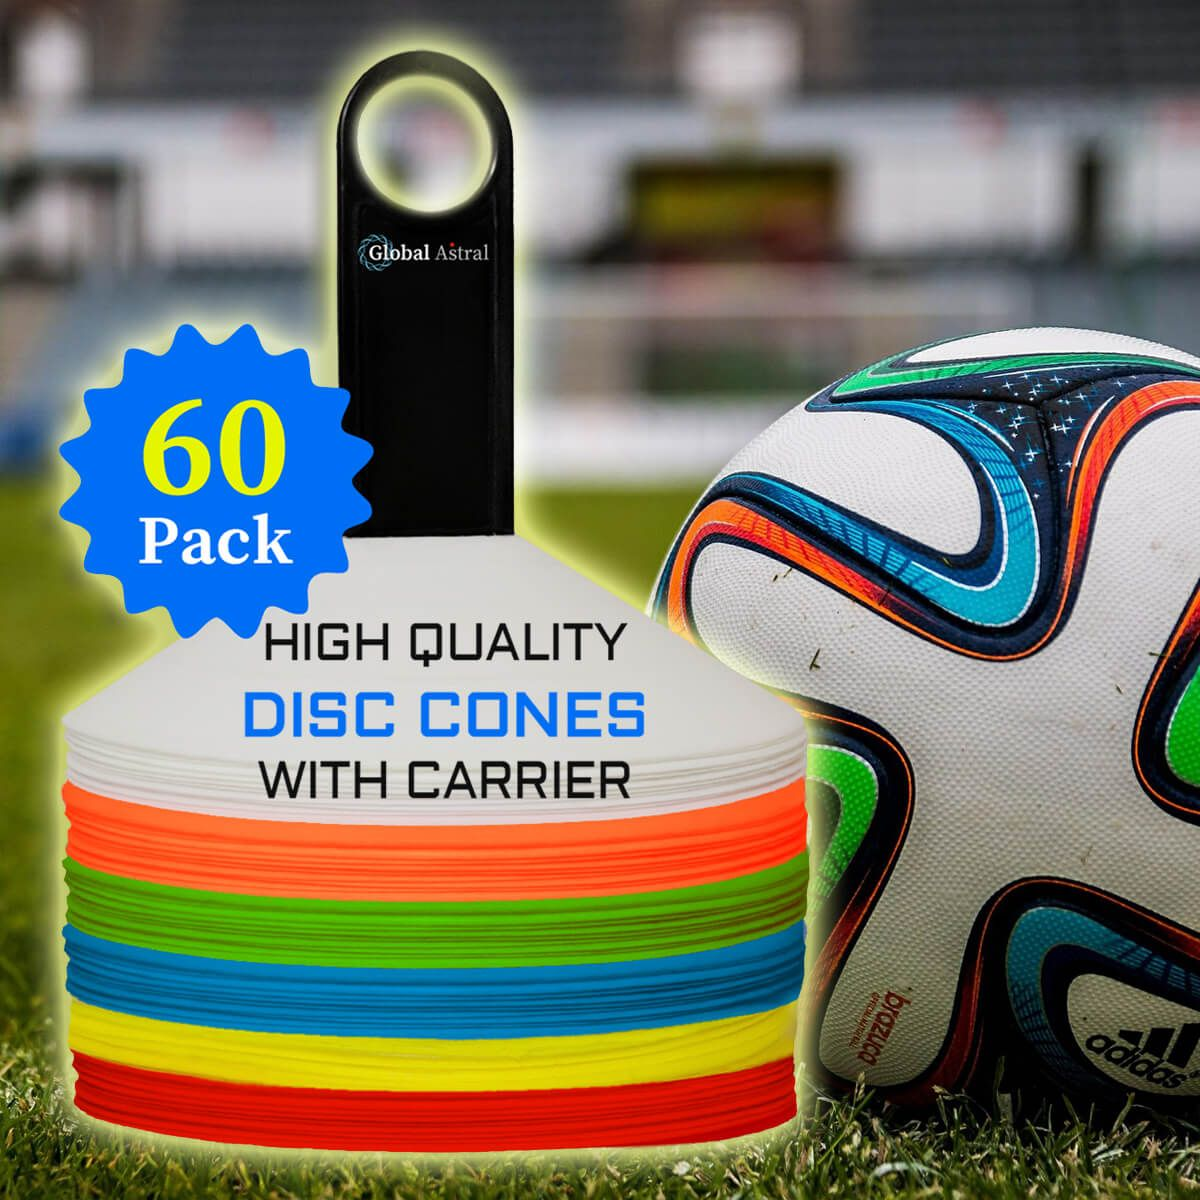 Set Of 60 Disc Cones Soccer Disc Cones Agility Cones For Drills Football Basketball Slalom Sports Trai Soccer Training Equipment Soccer Training Train